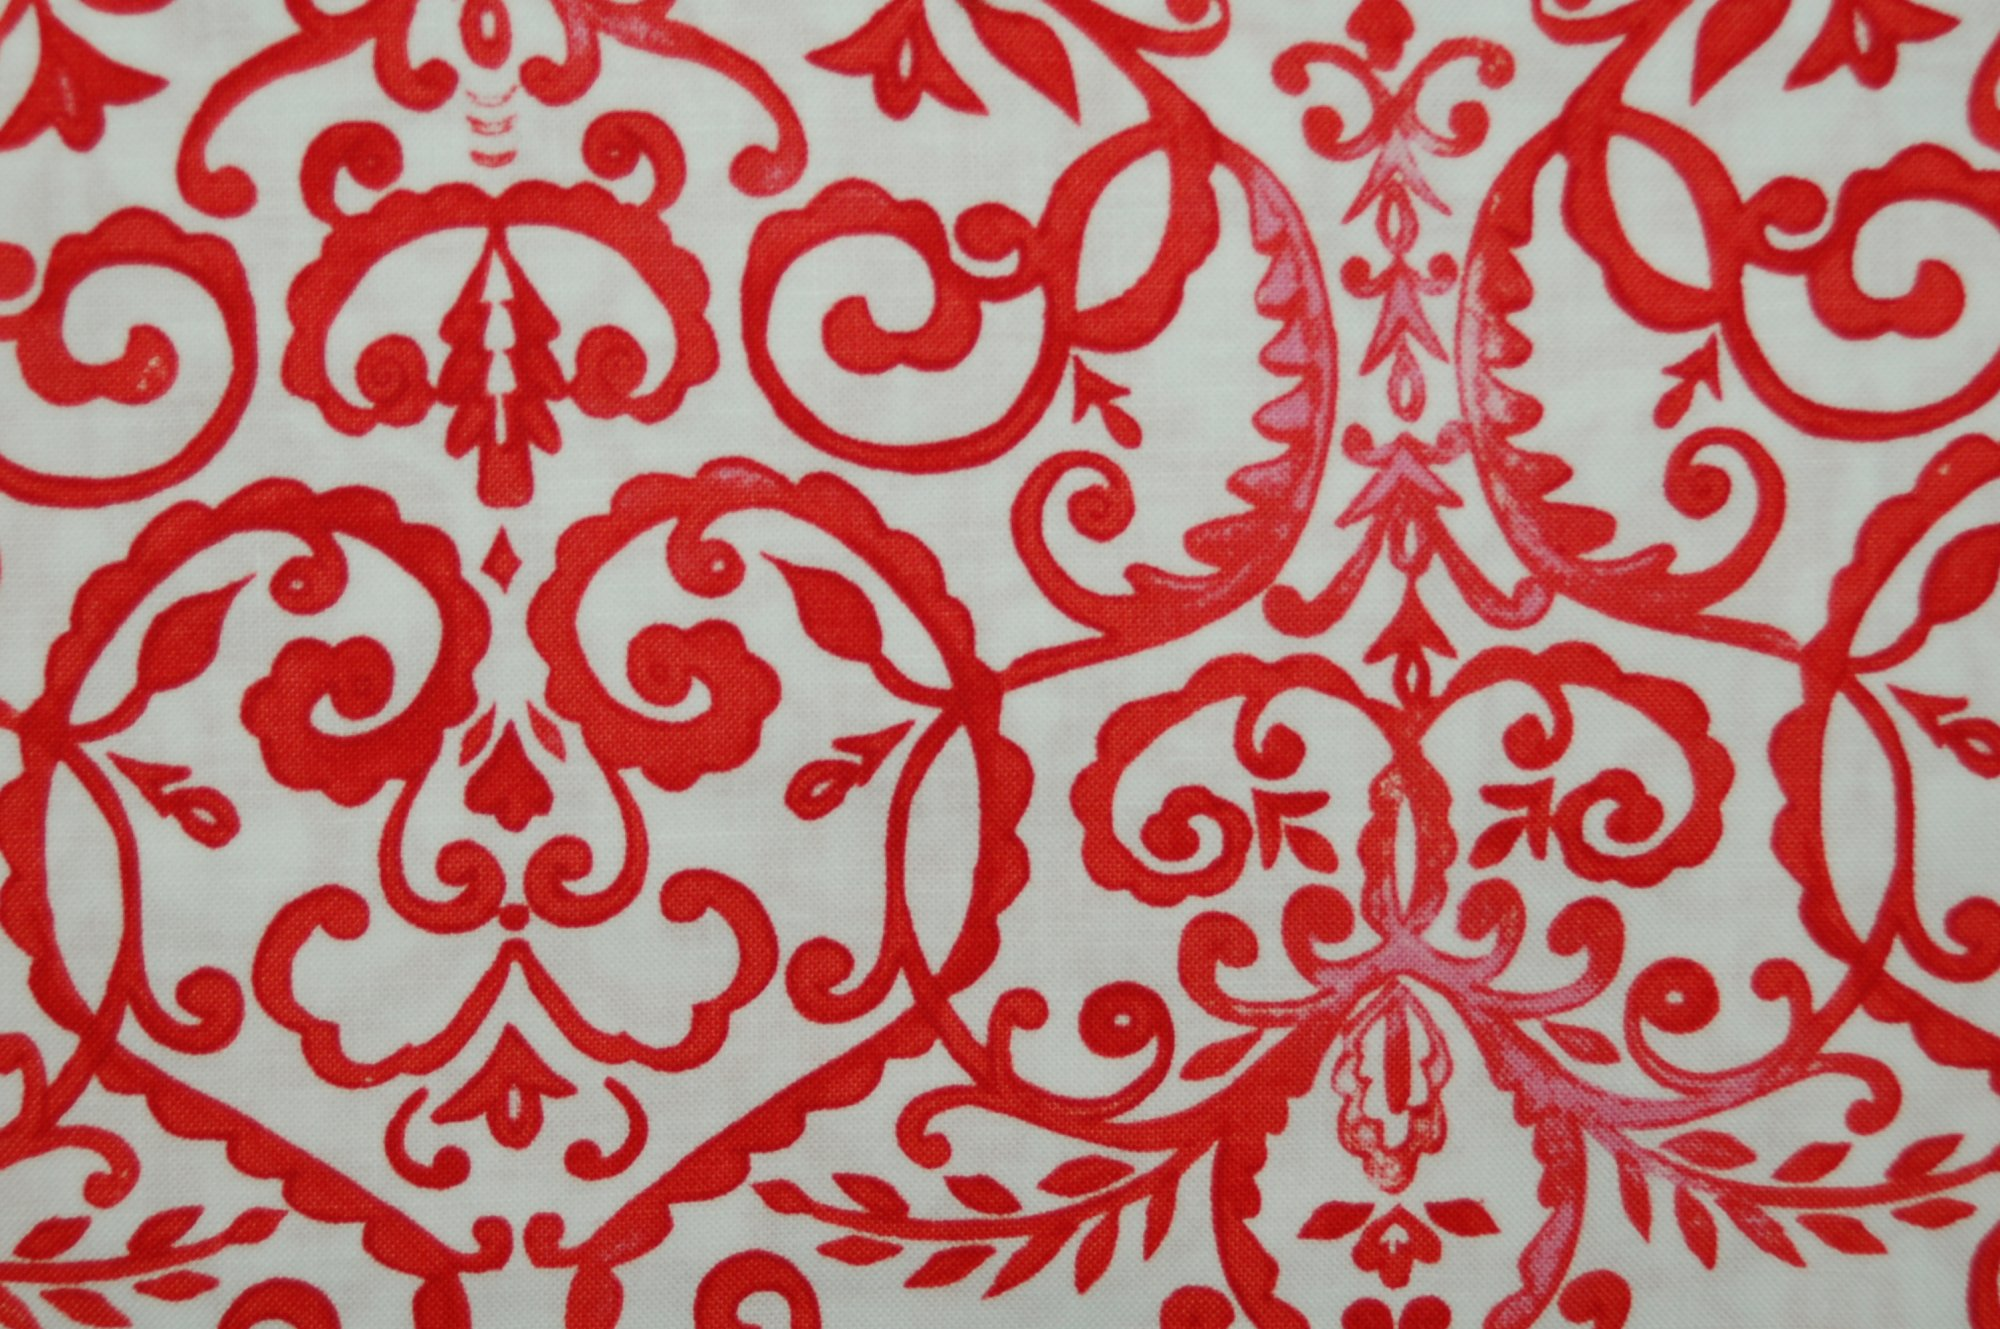 Merry Mistletoe - Scrollwork (Red) from Dena Designs for Free Spirit